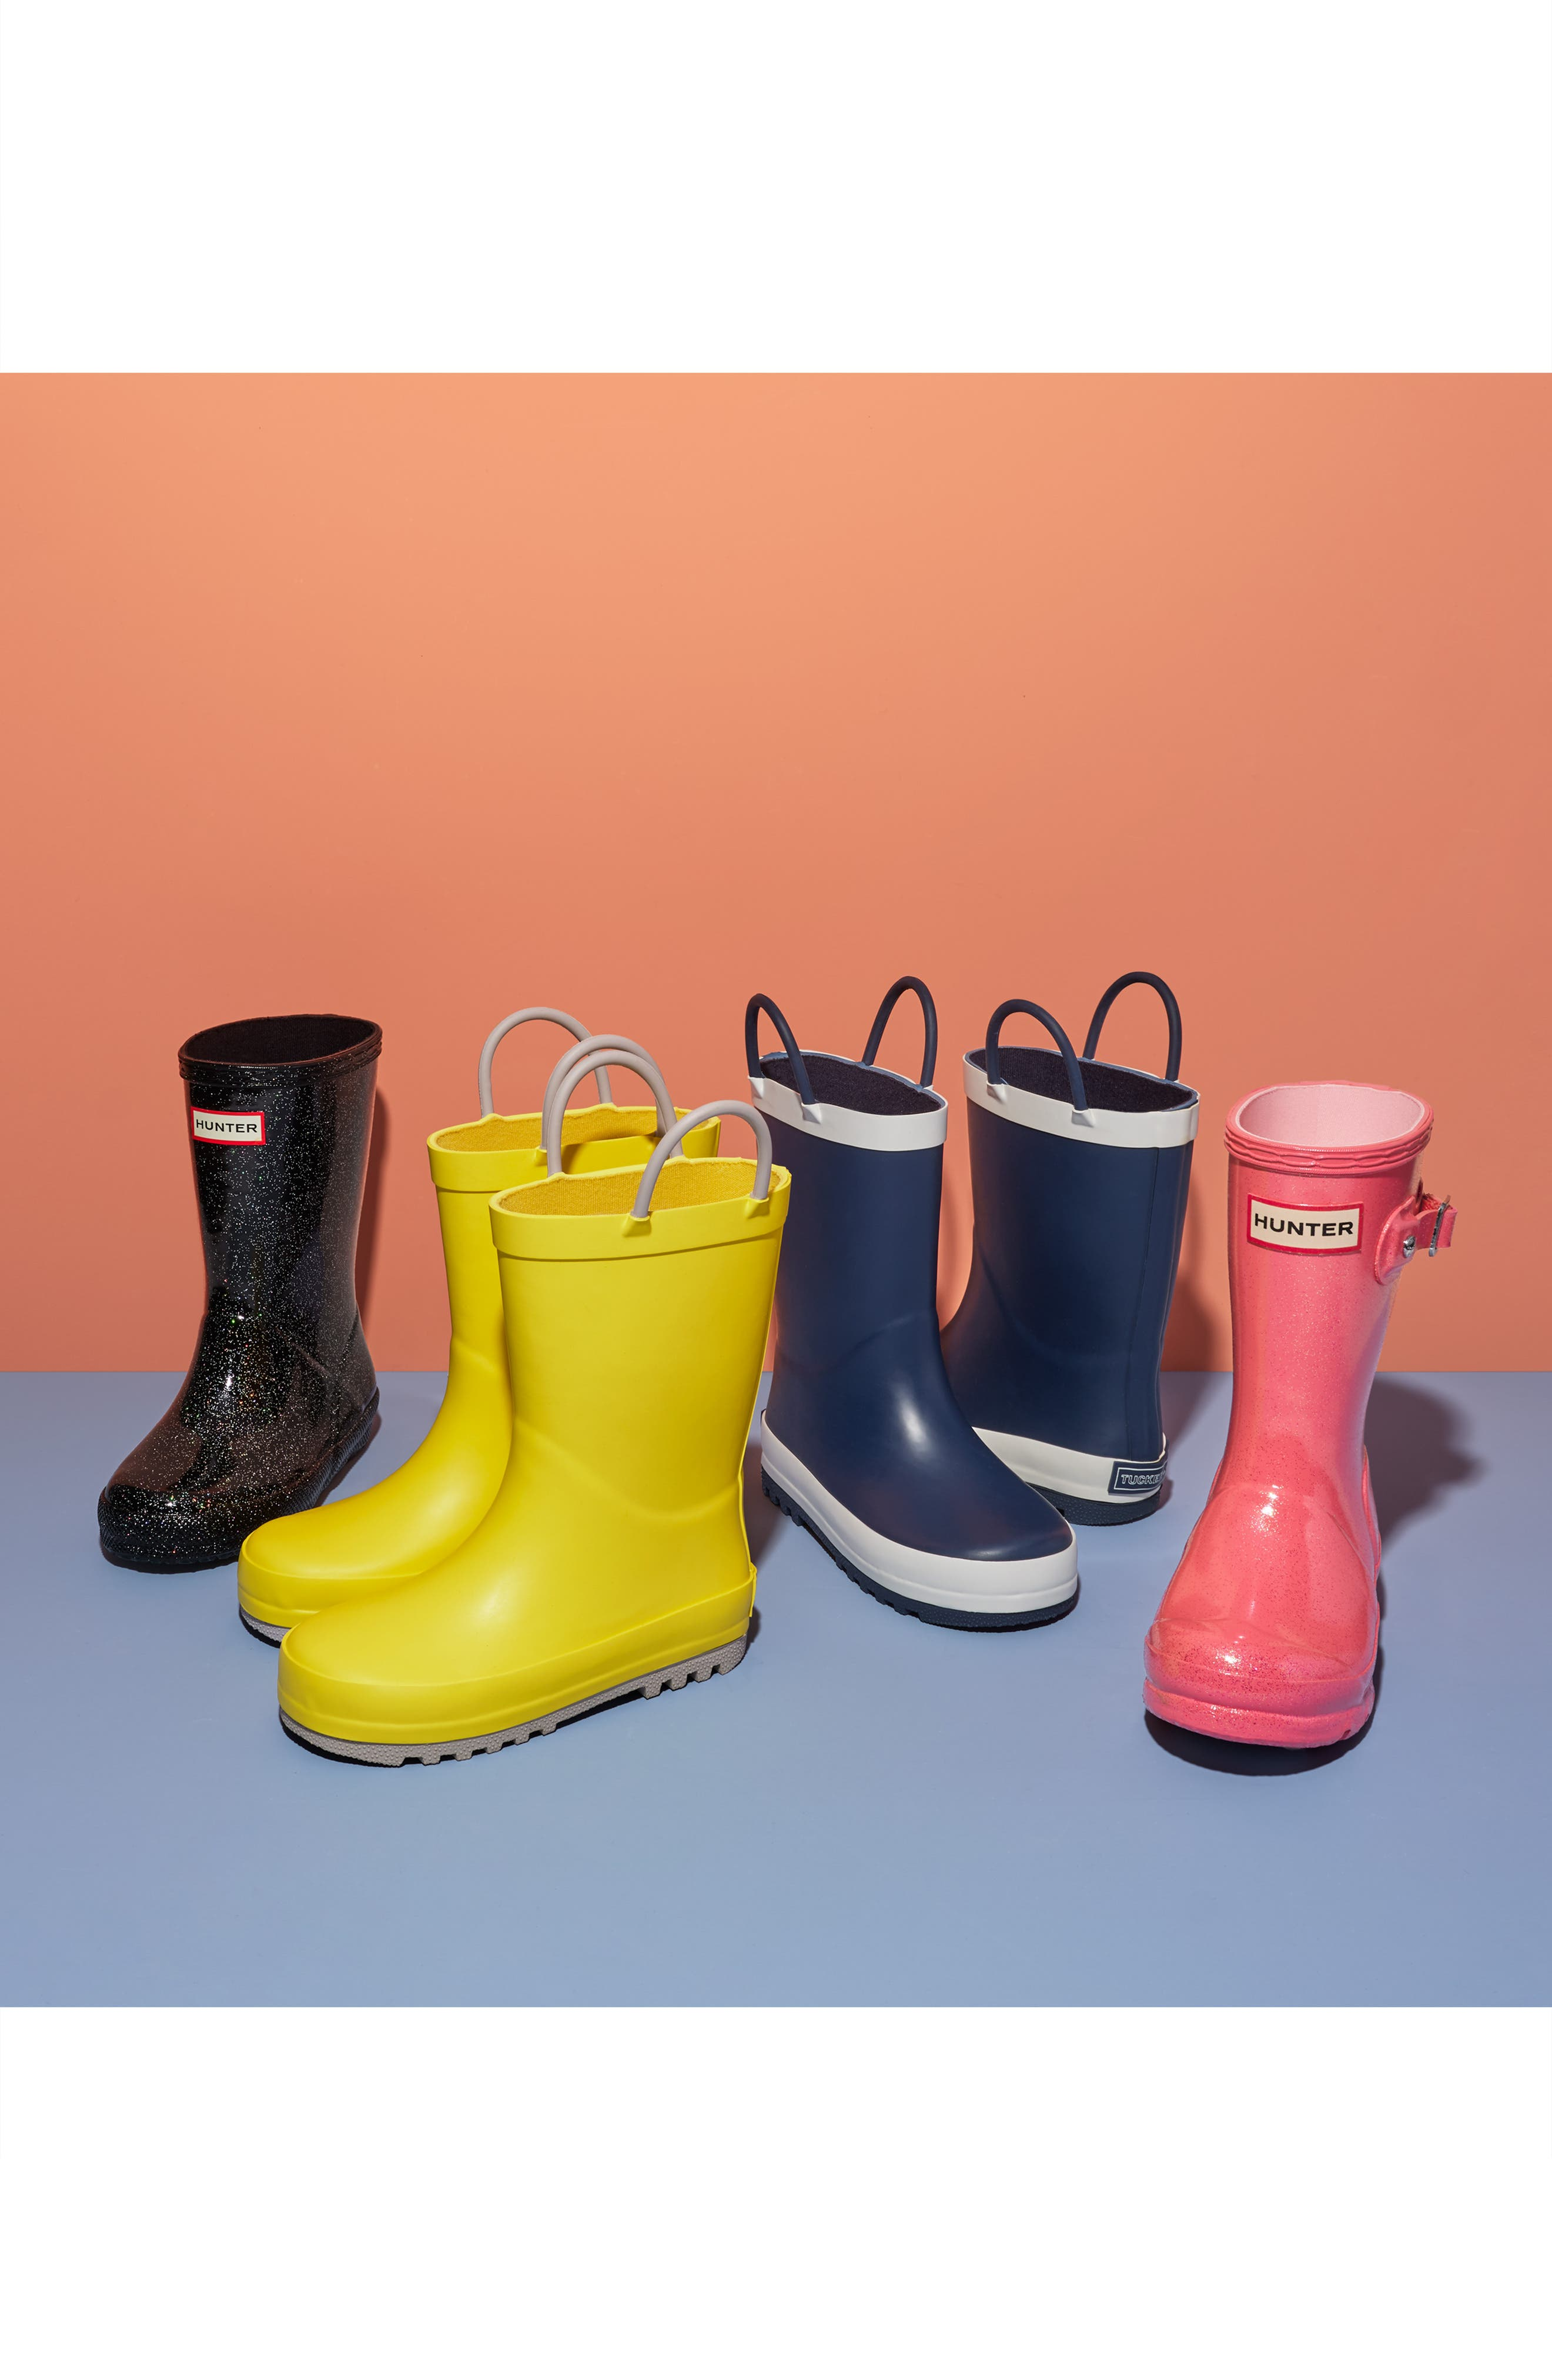 TUCKER + TATE, Puddle Rain Boot, Alternate thumbnail 7, color, YELLOW/ GREY RUBBER